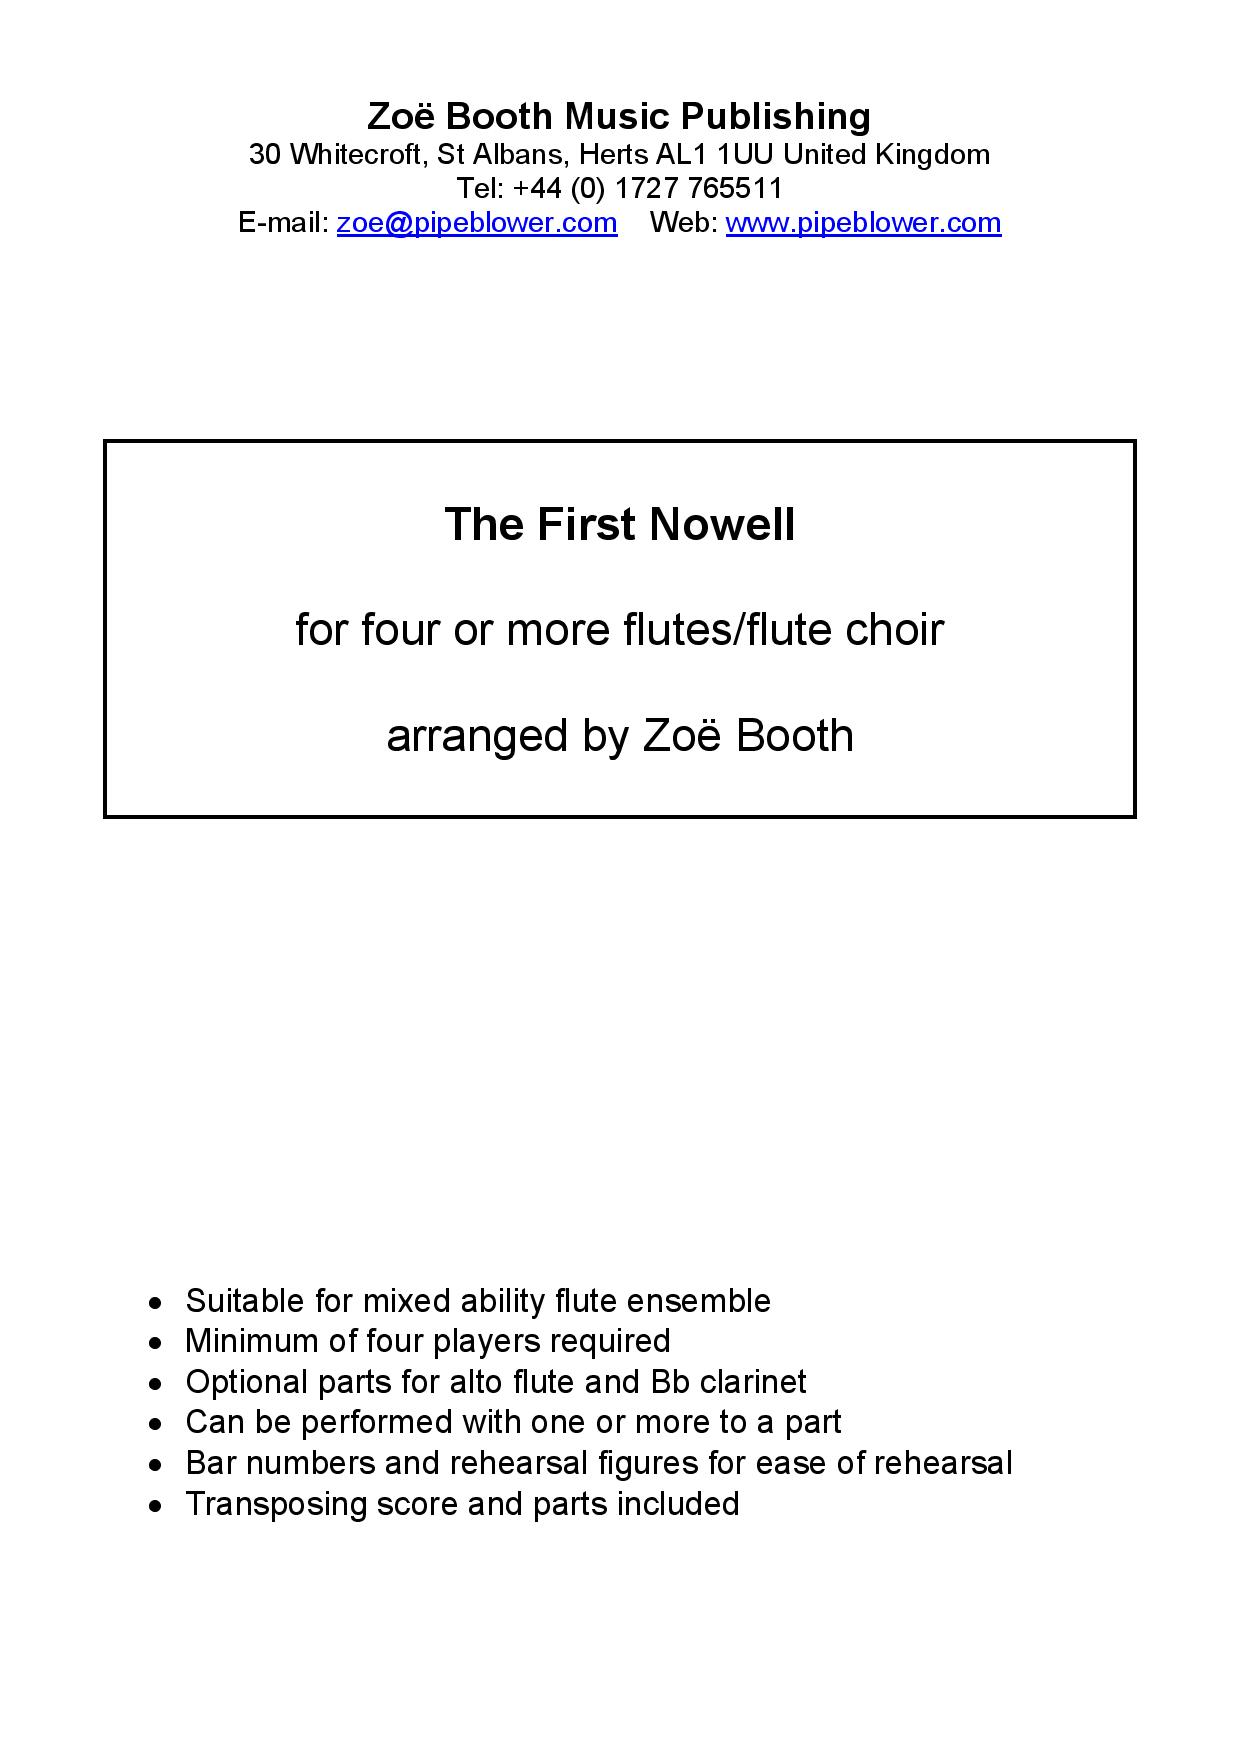 The First Nowell (Traditional),  arranged by Zoë Booth for four or more flutes/flute choir